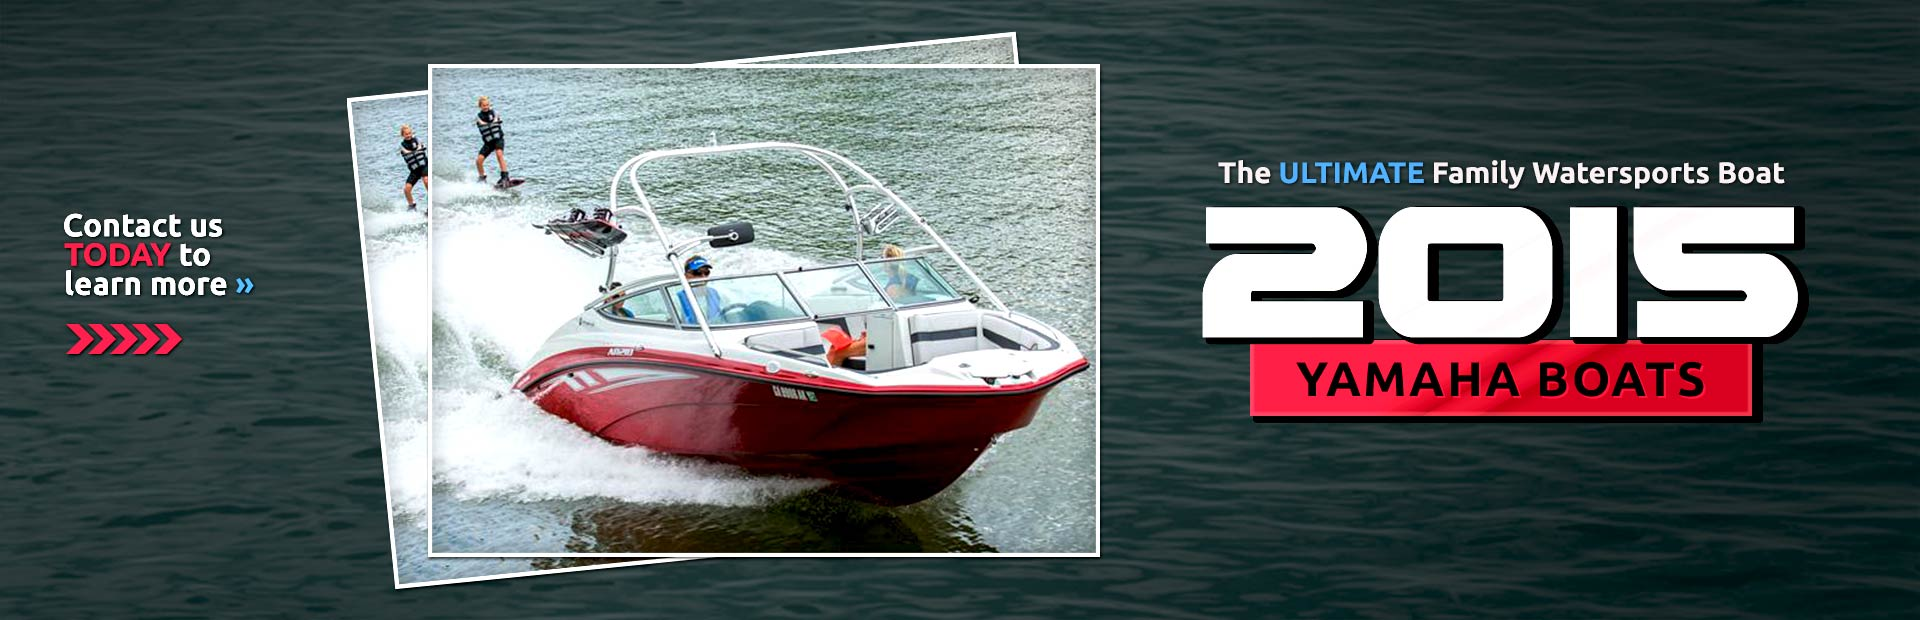 2015 Yamaha Boats: Contact us today to learn more.